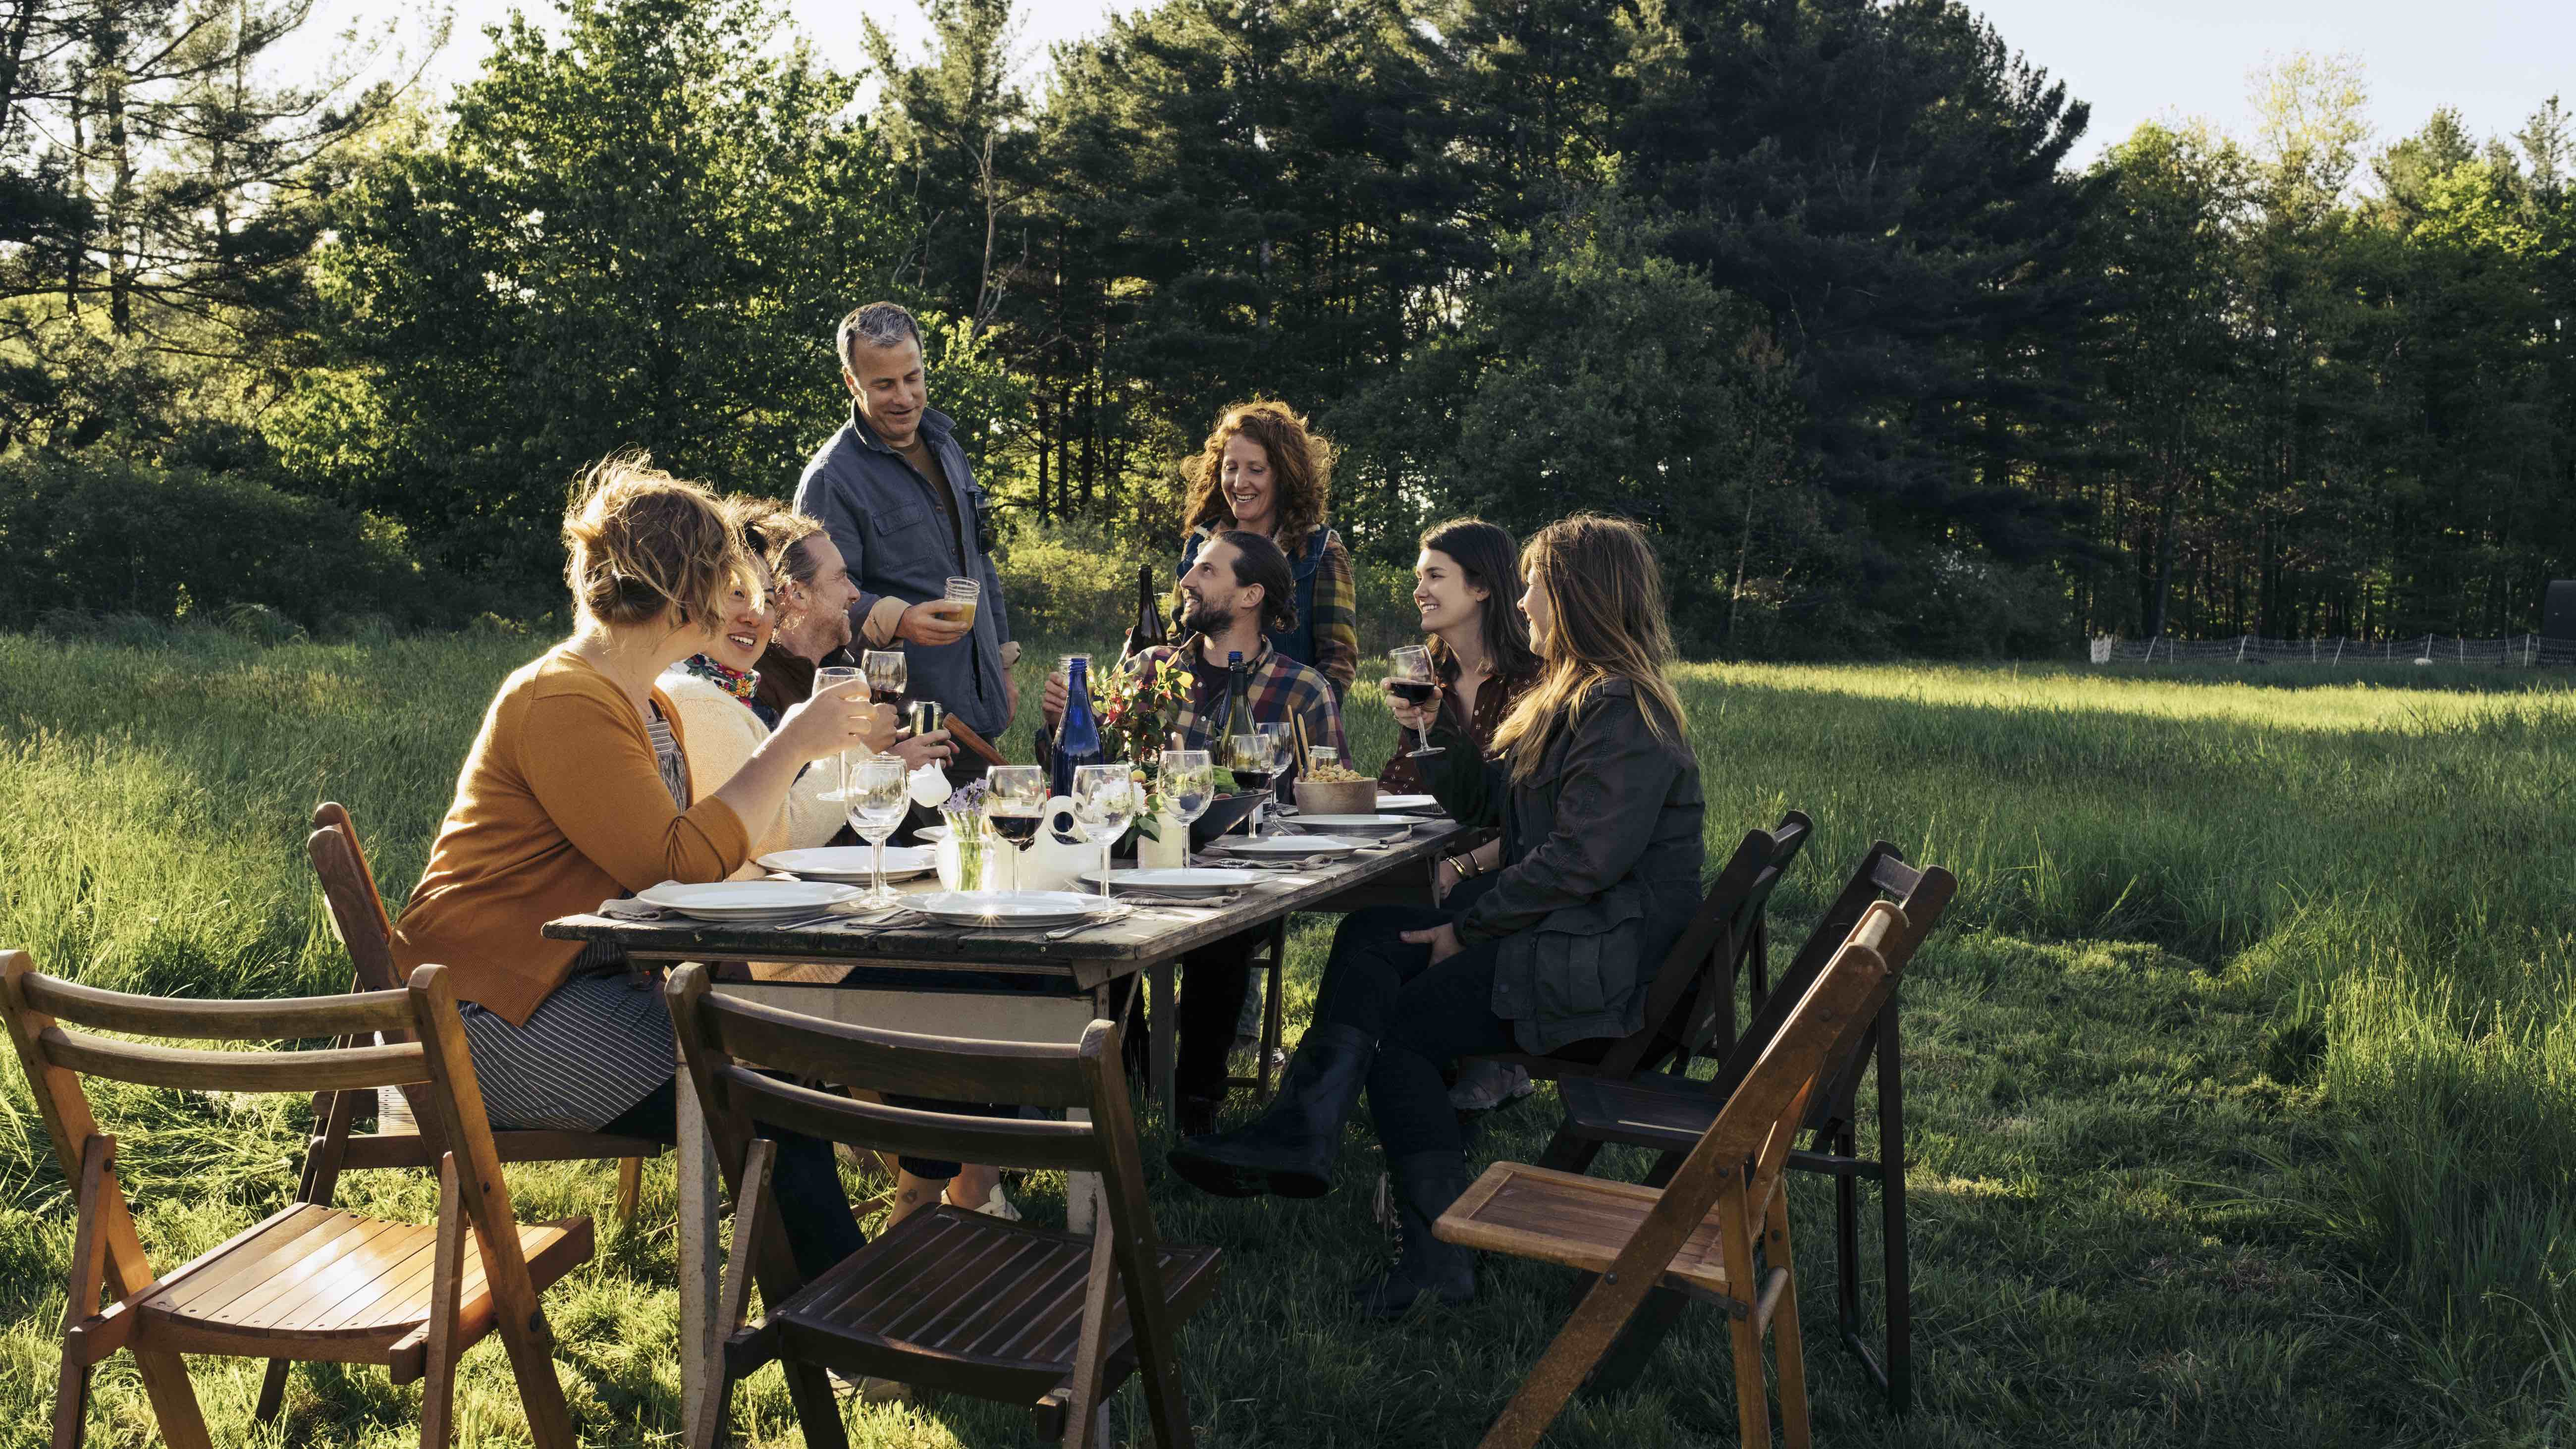 Group with ethical investments eating in a field